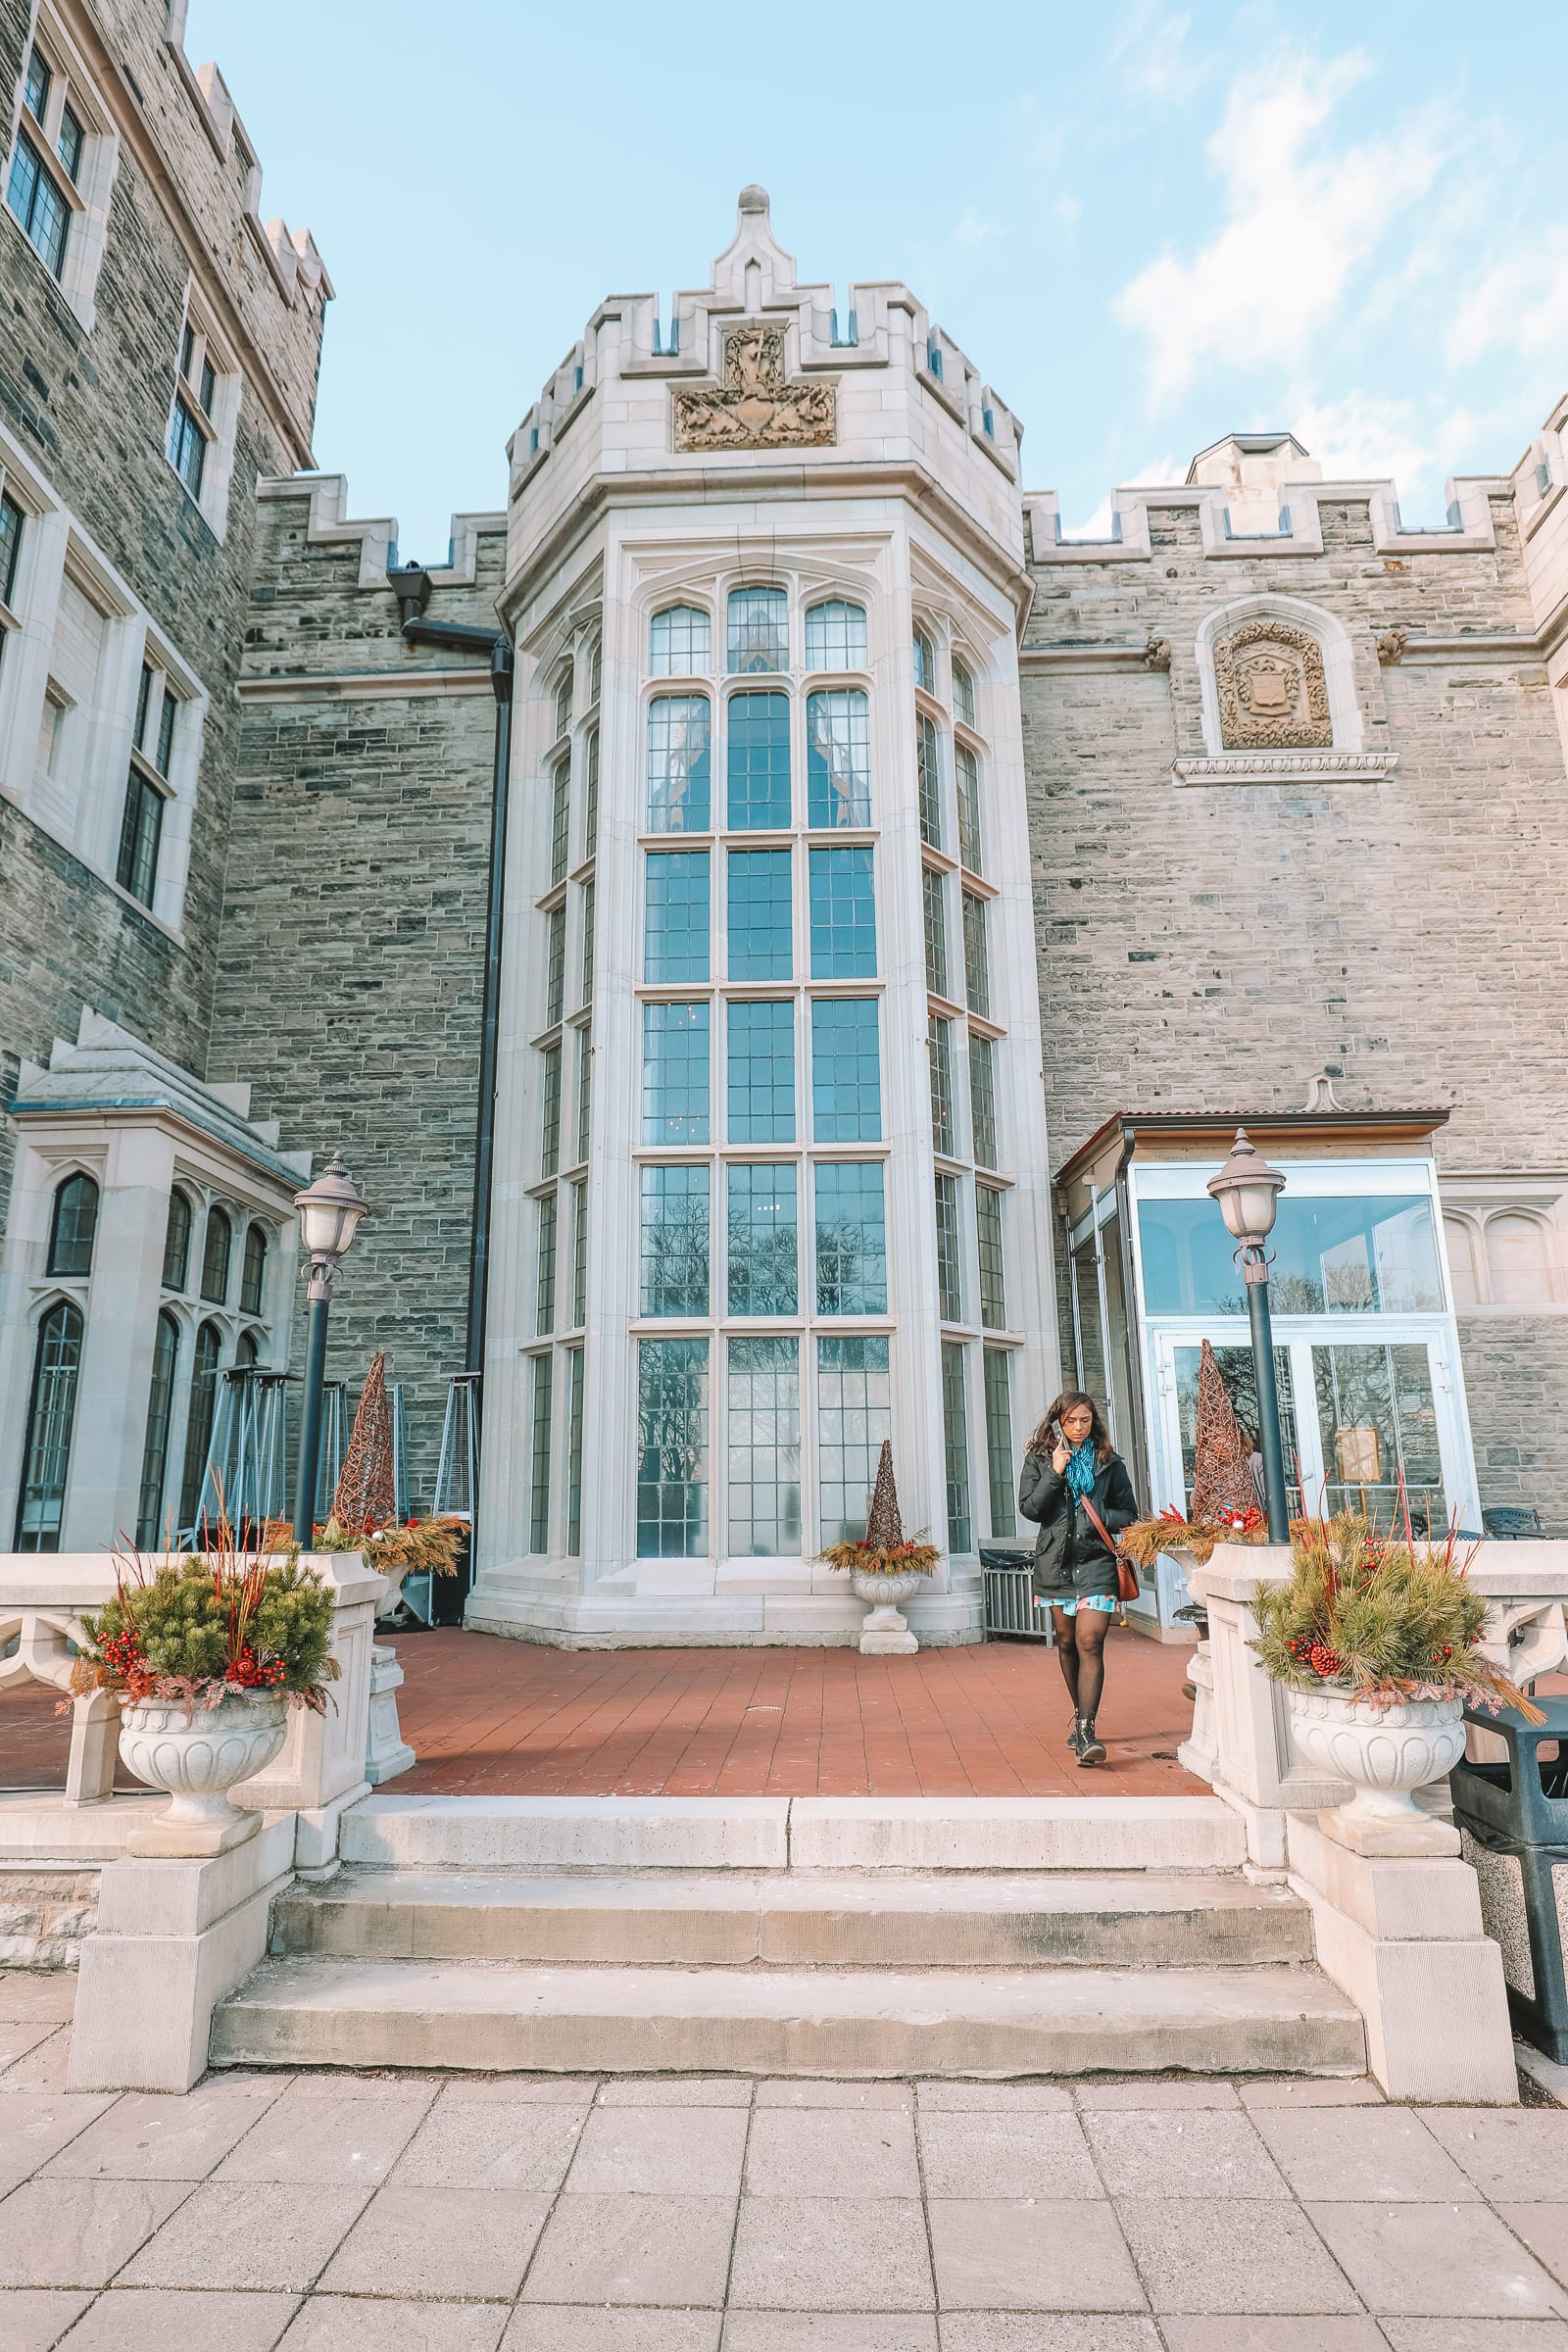 Casa Loma - The Castle In Toronto, Canada You Absolutely Have To Visit! (53)